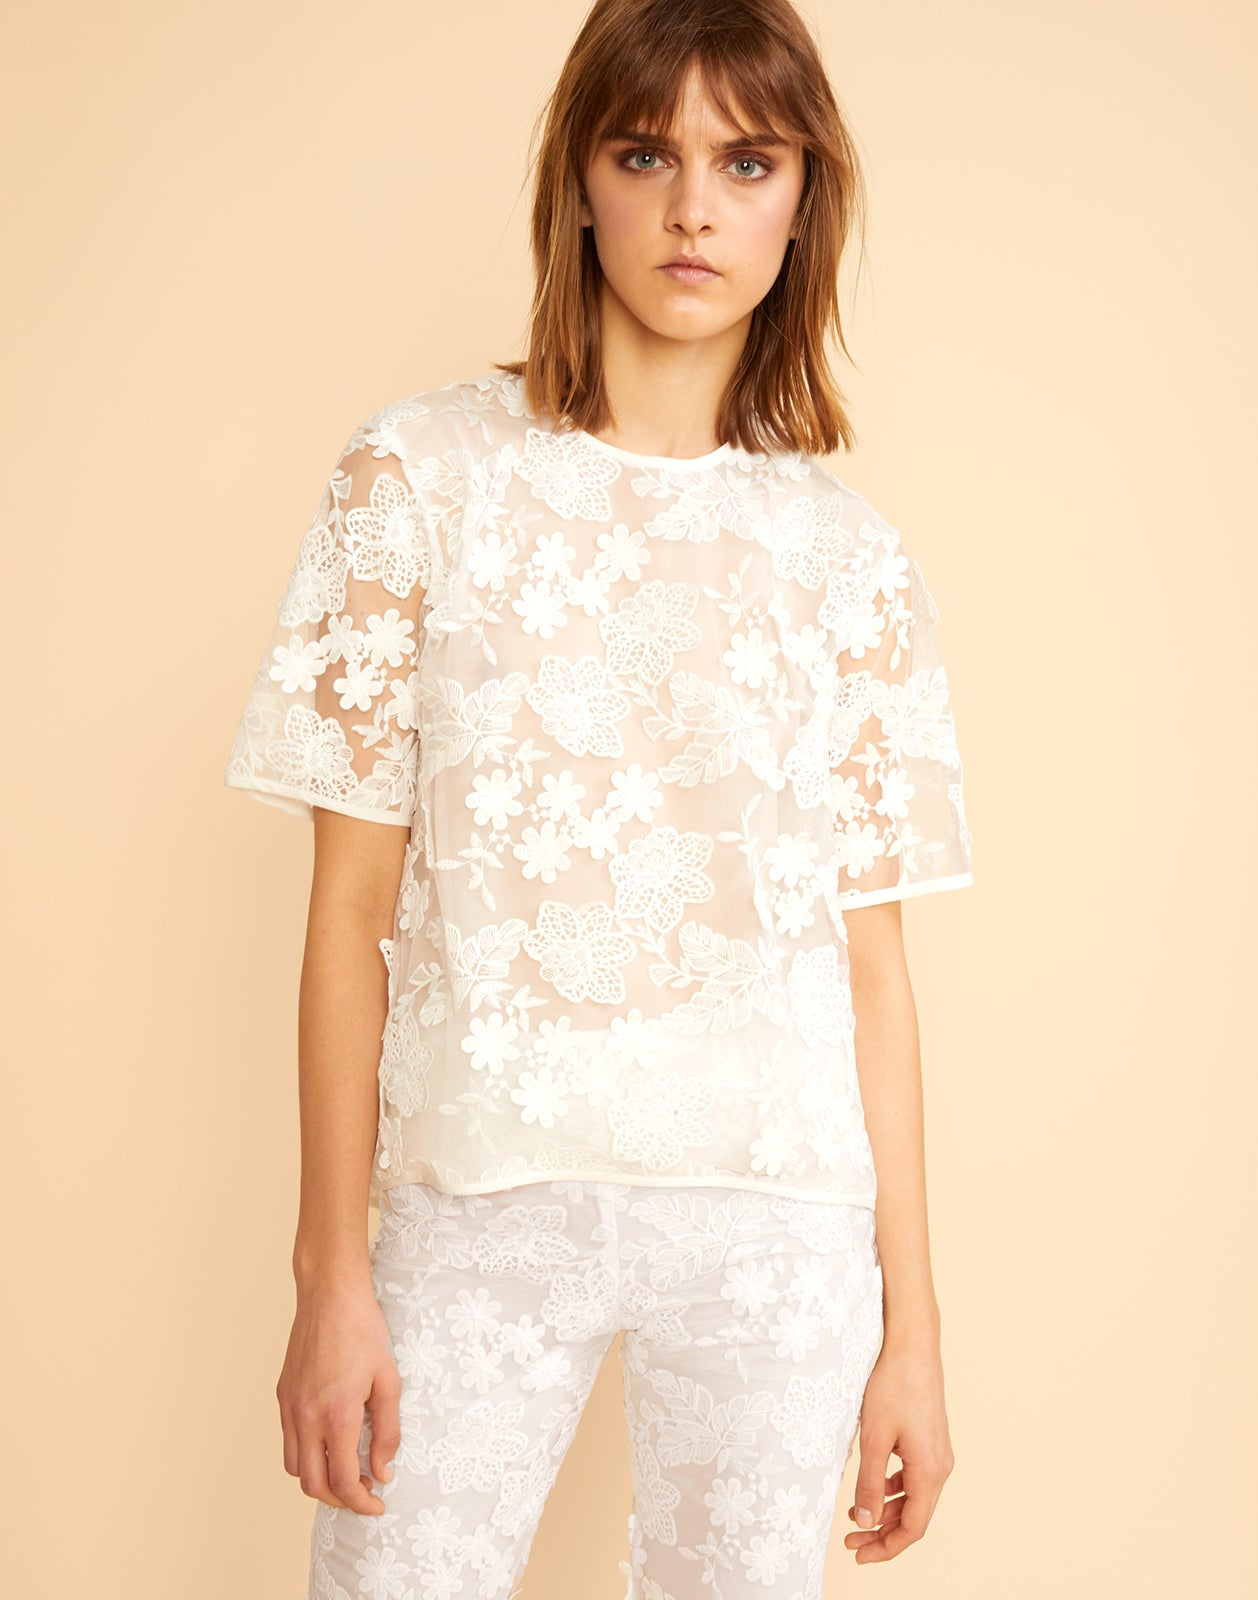 Front view of sheer floral lace tee.